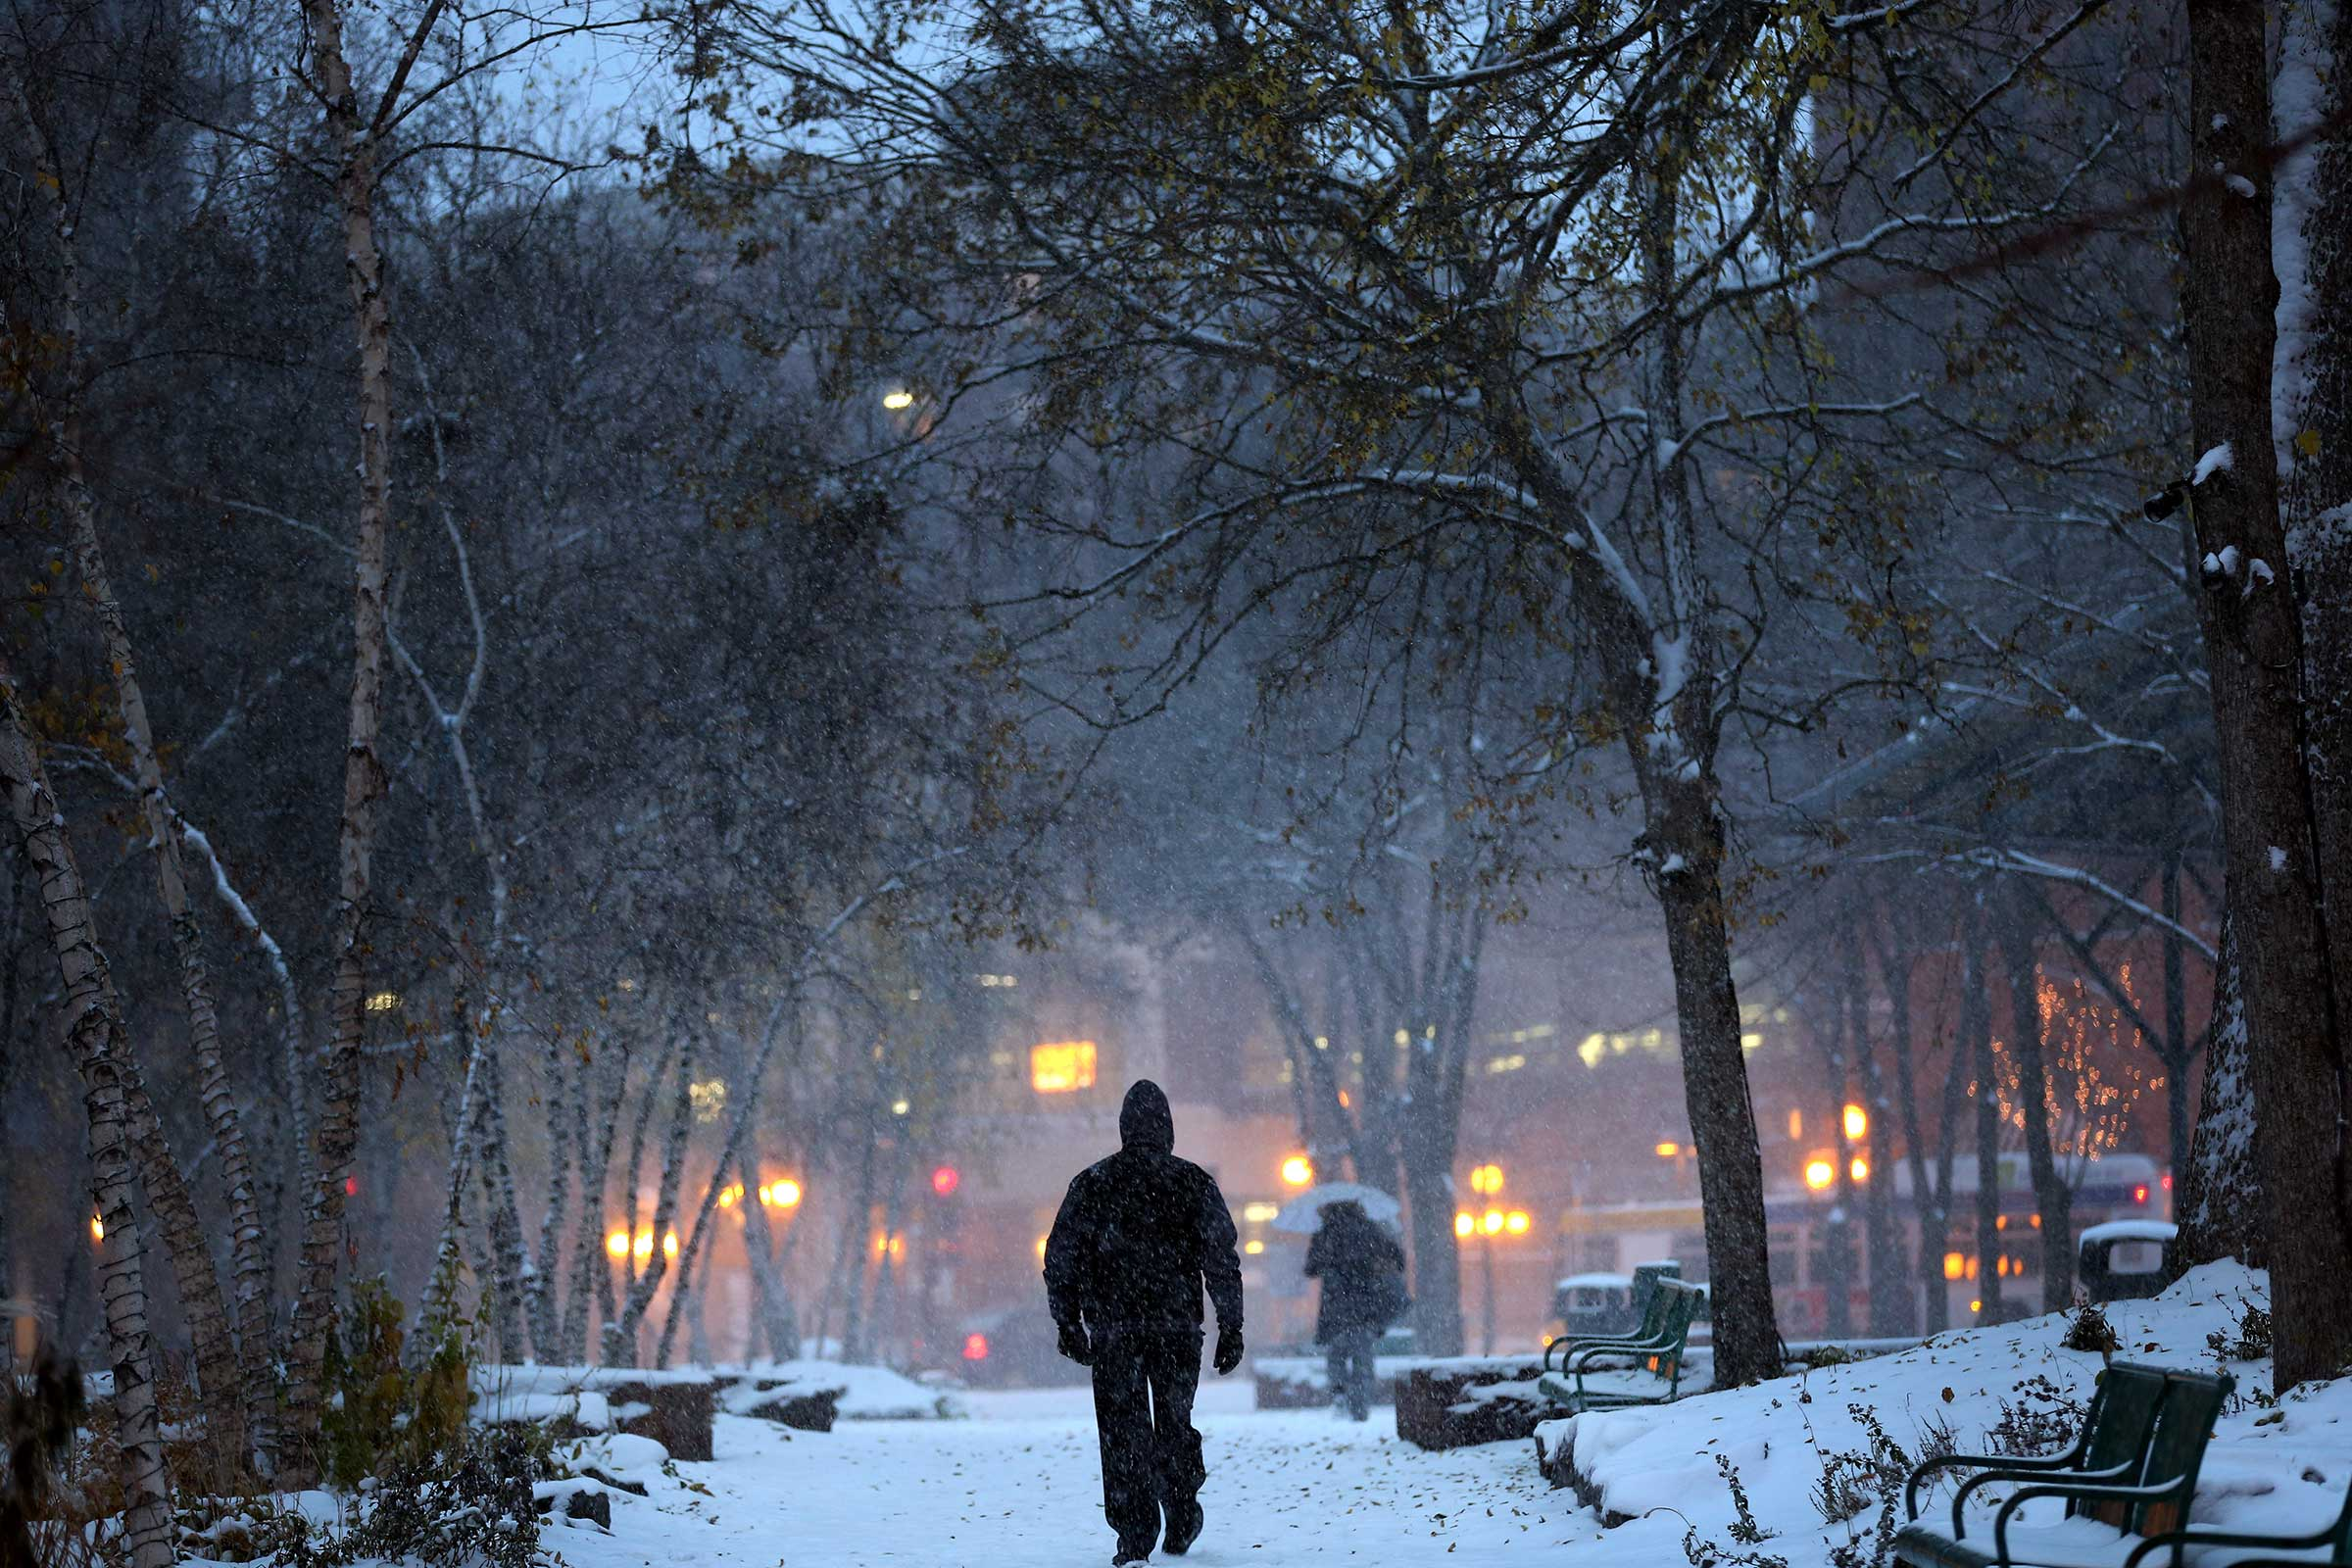 A man walks through Mears Park in downtown St. Paul, Minn., during the first snowstorm of the season on Nov. 10, 2014.